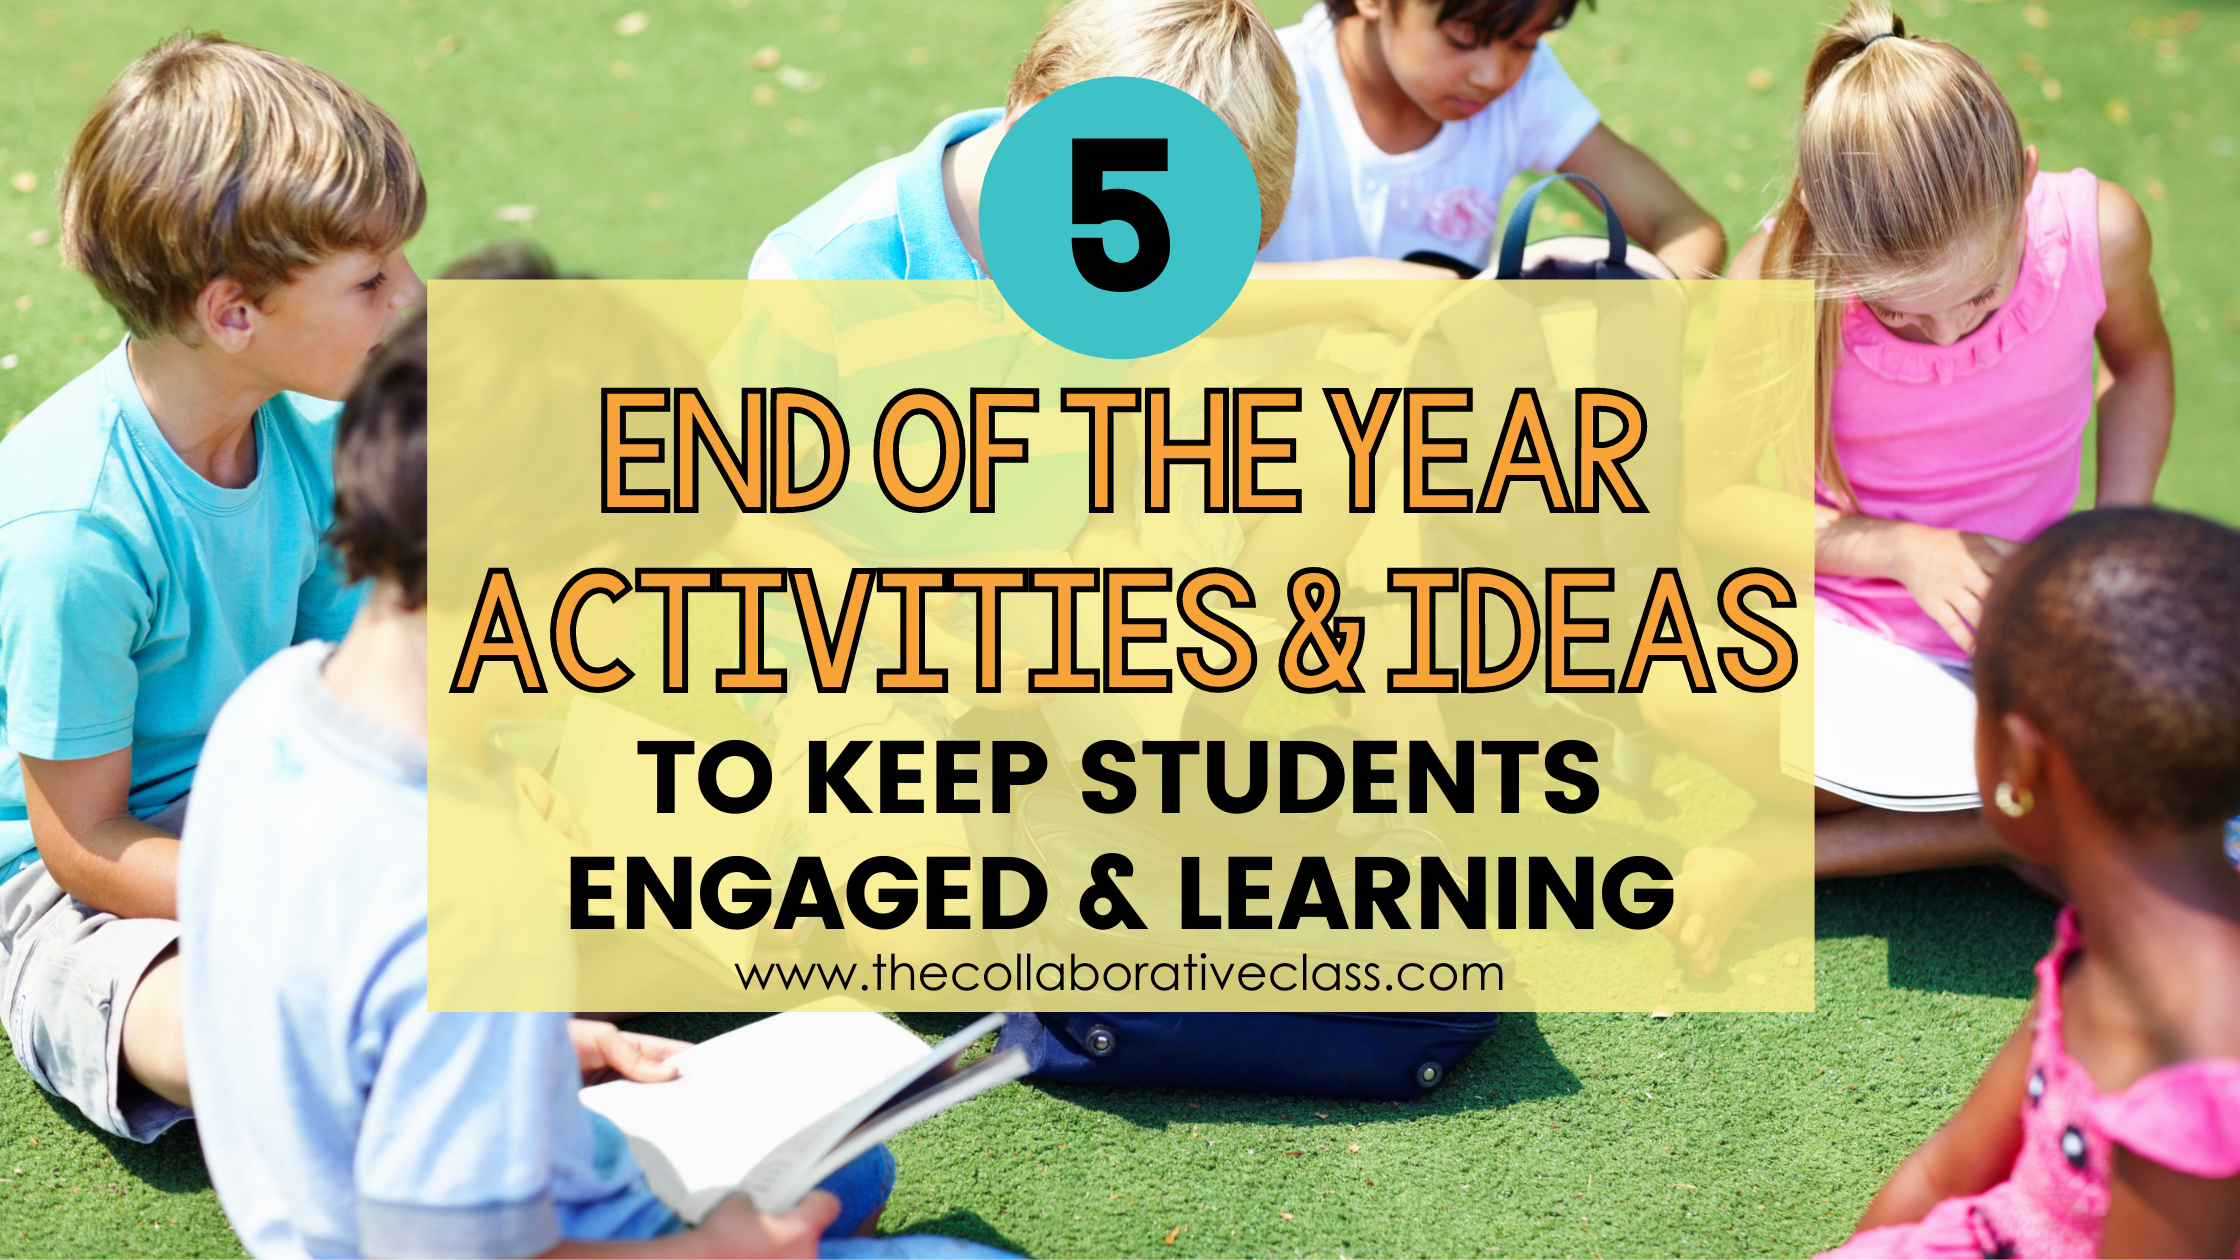 5 End of the Year Activities and Ideas to Keep Students Engaged and Learning